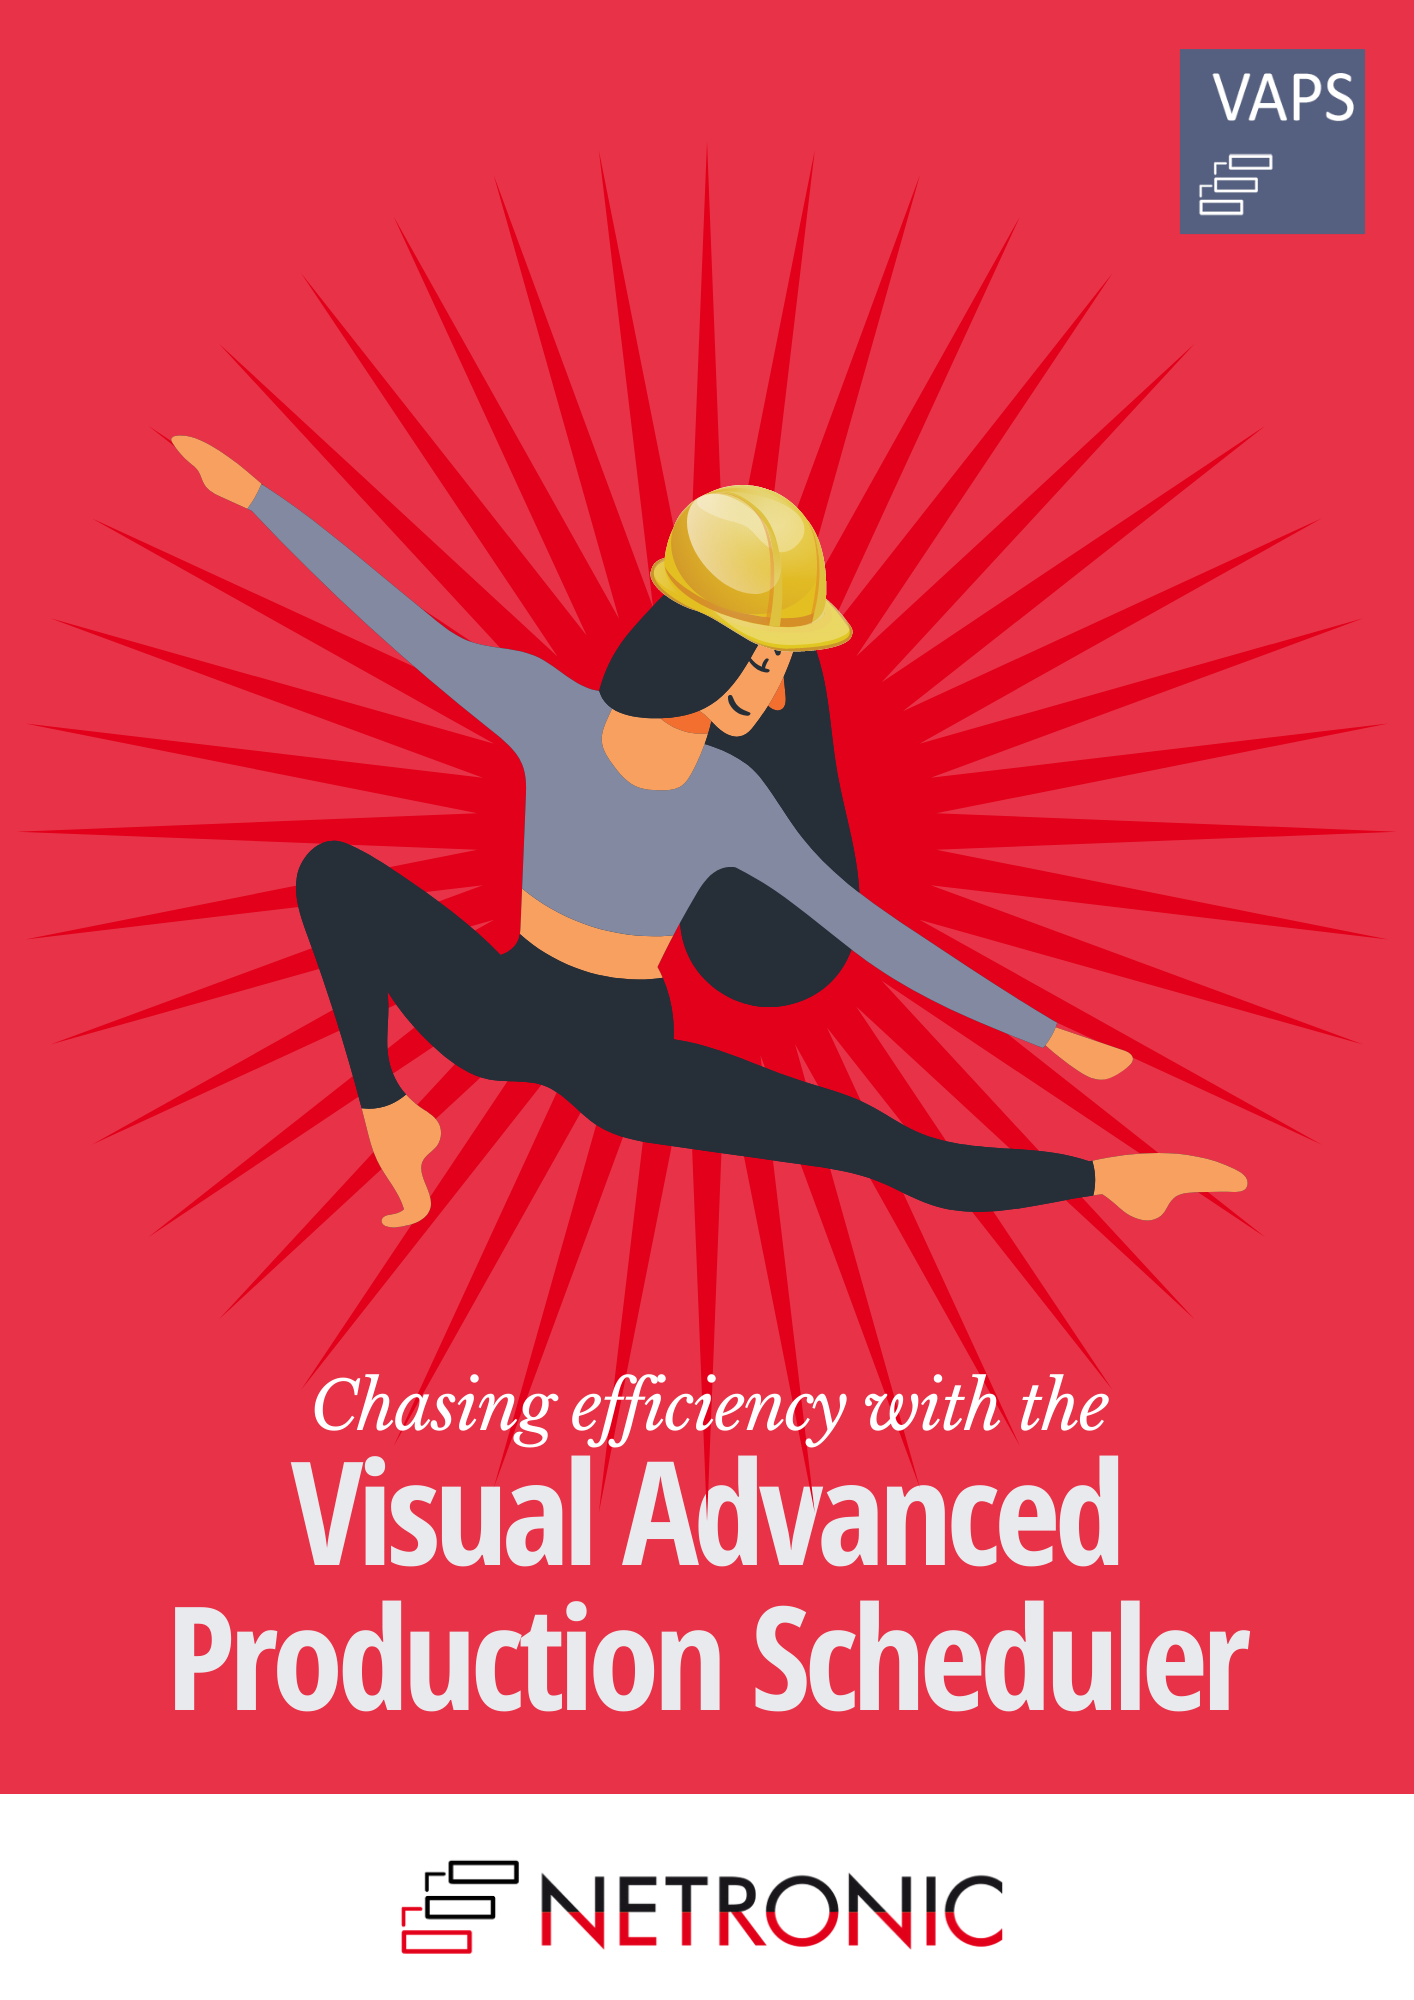 Visual Advanced Production Scheduler